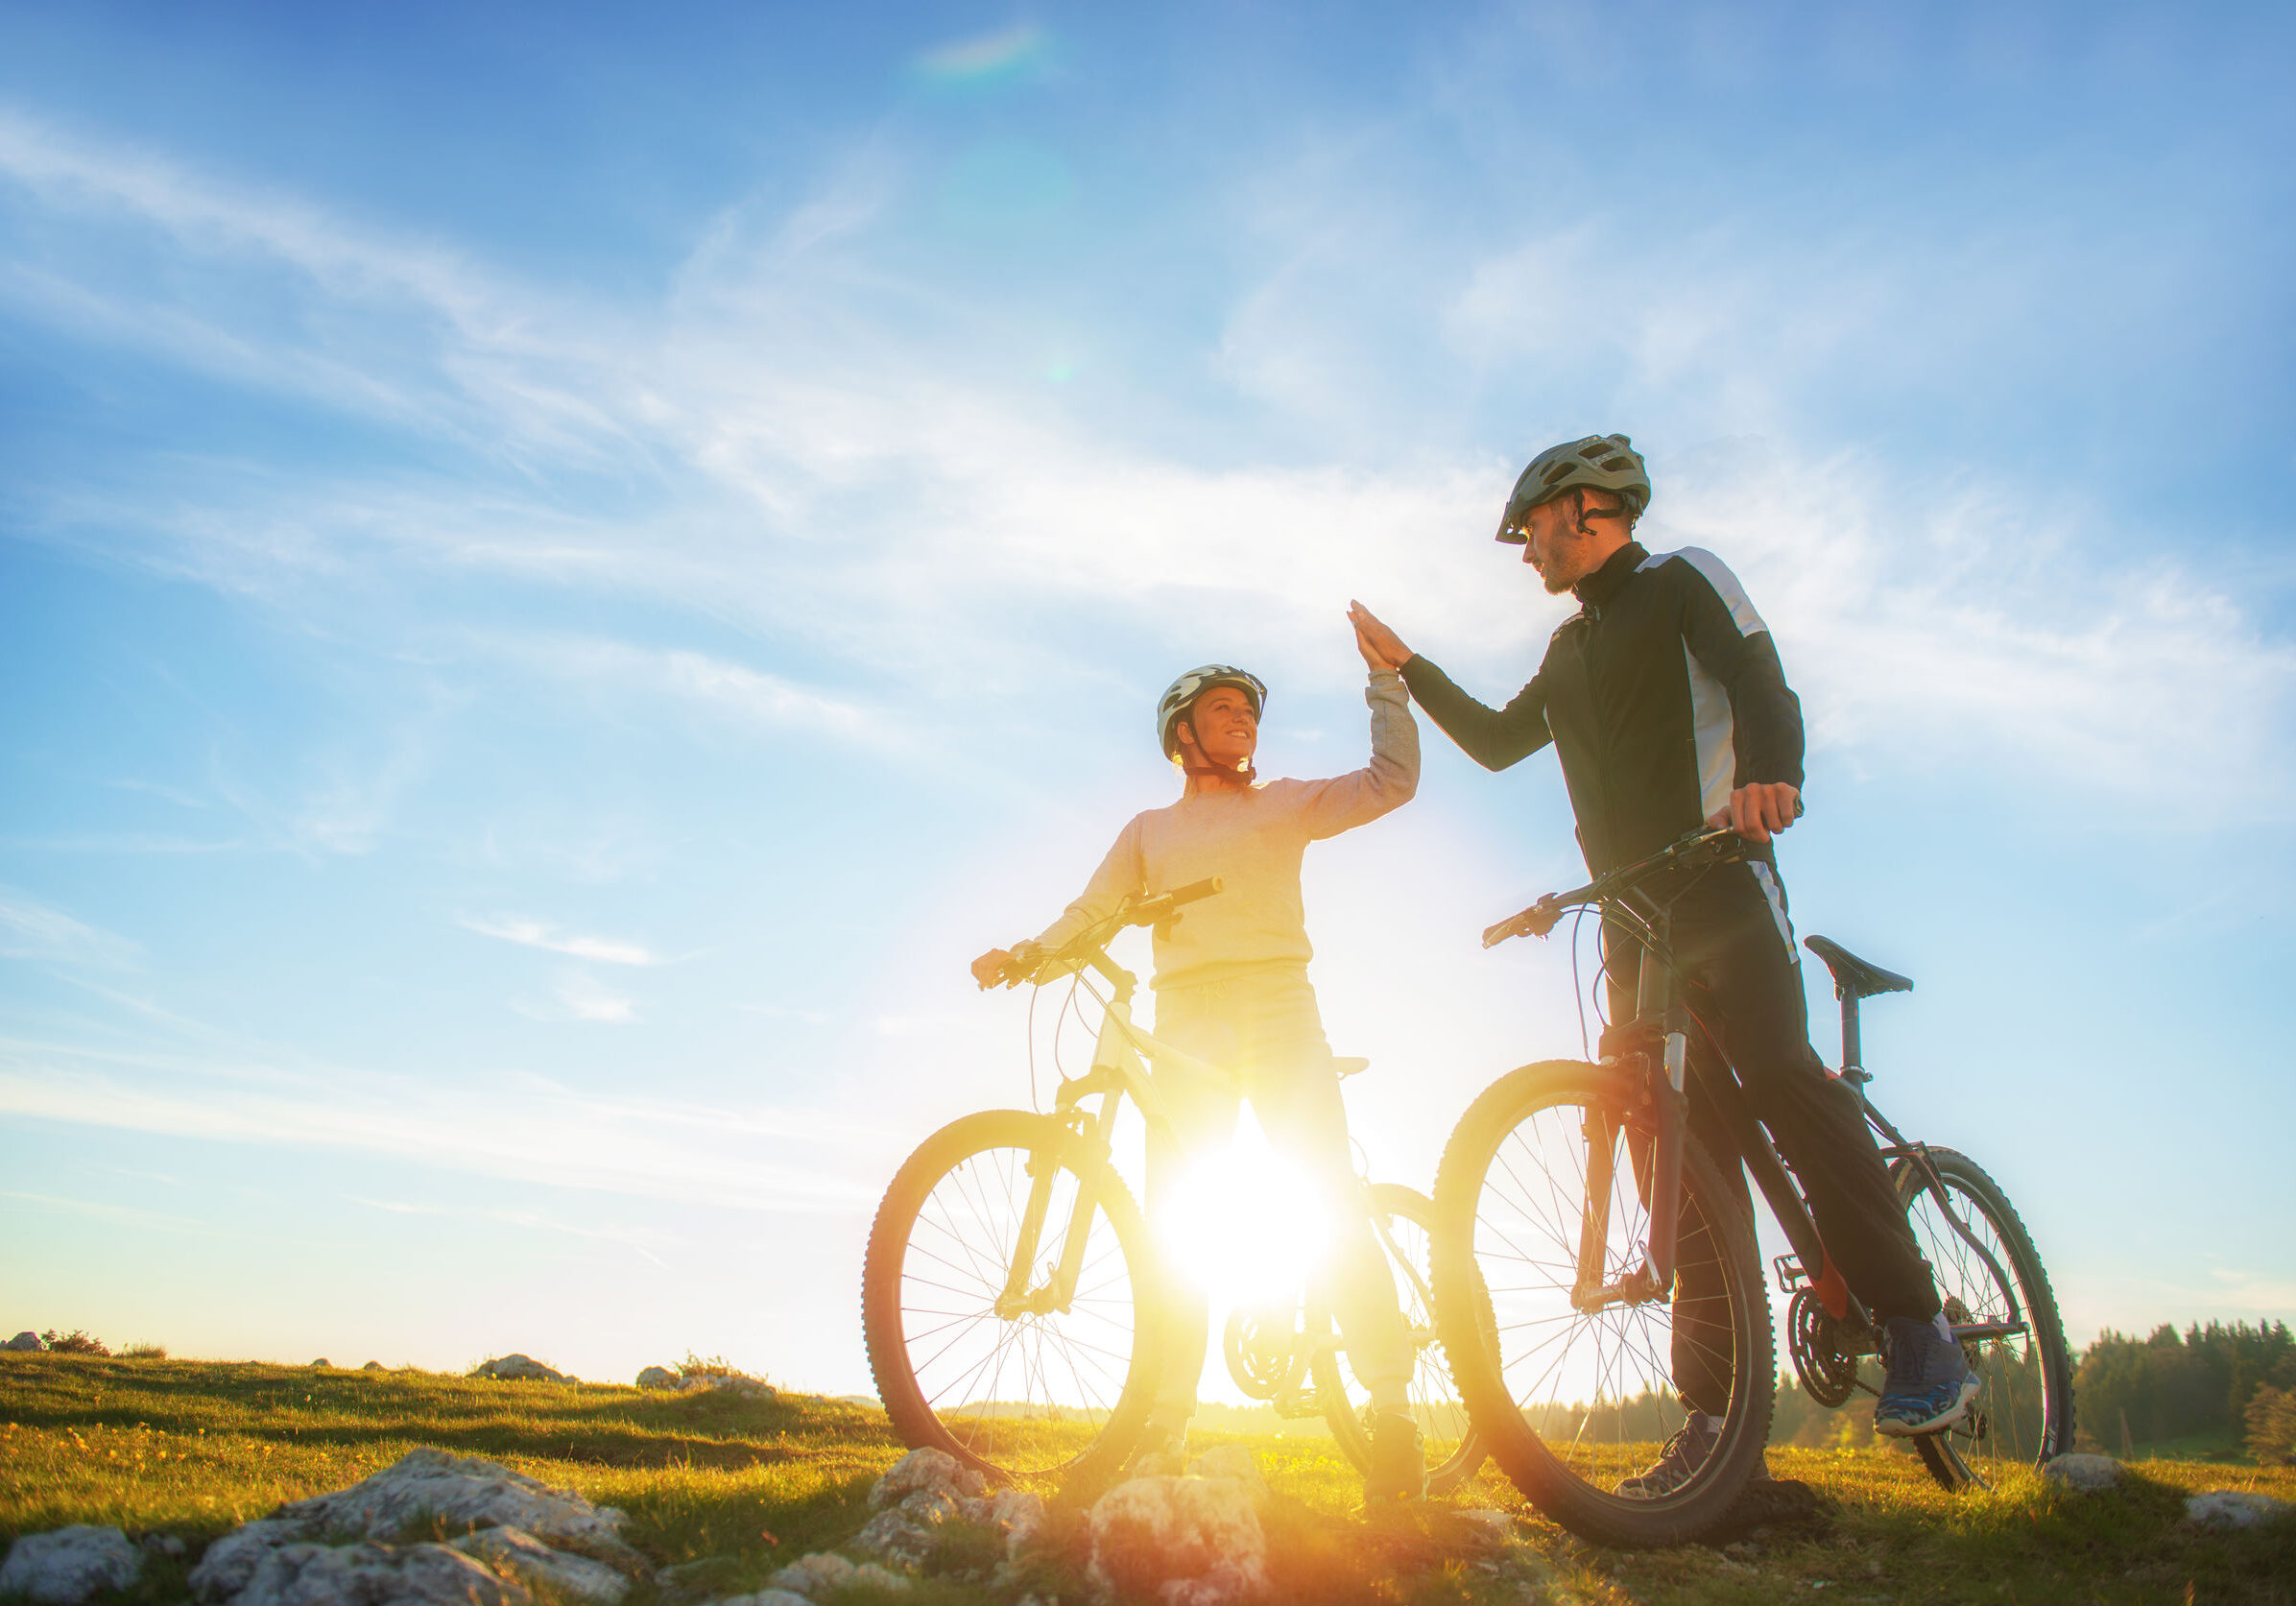 happy couple goes on a mountain road in the woods on bikes with helmets giving each other a high five.